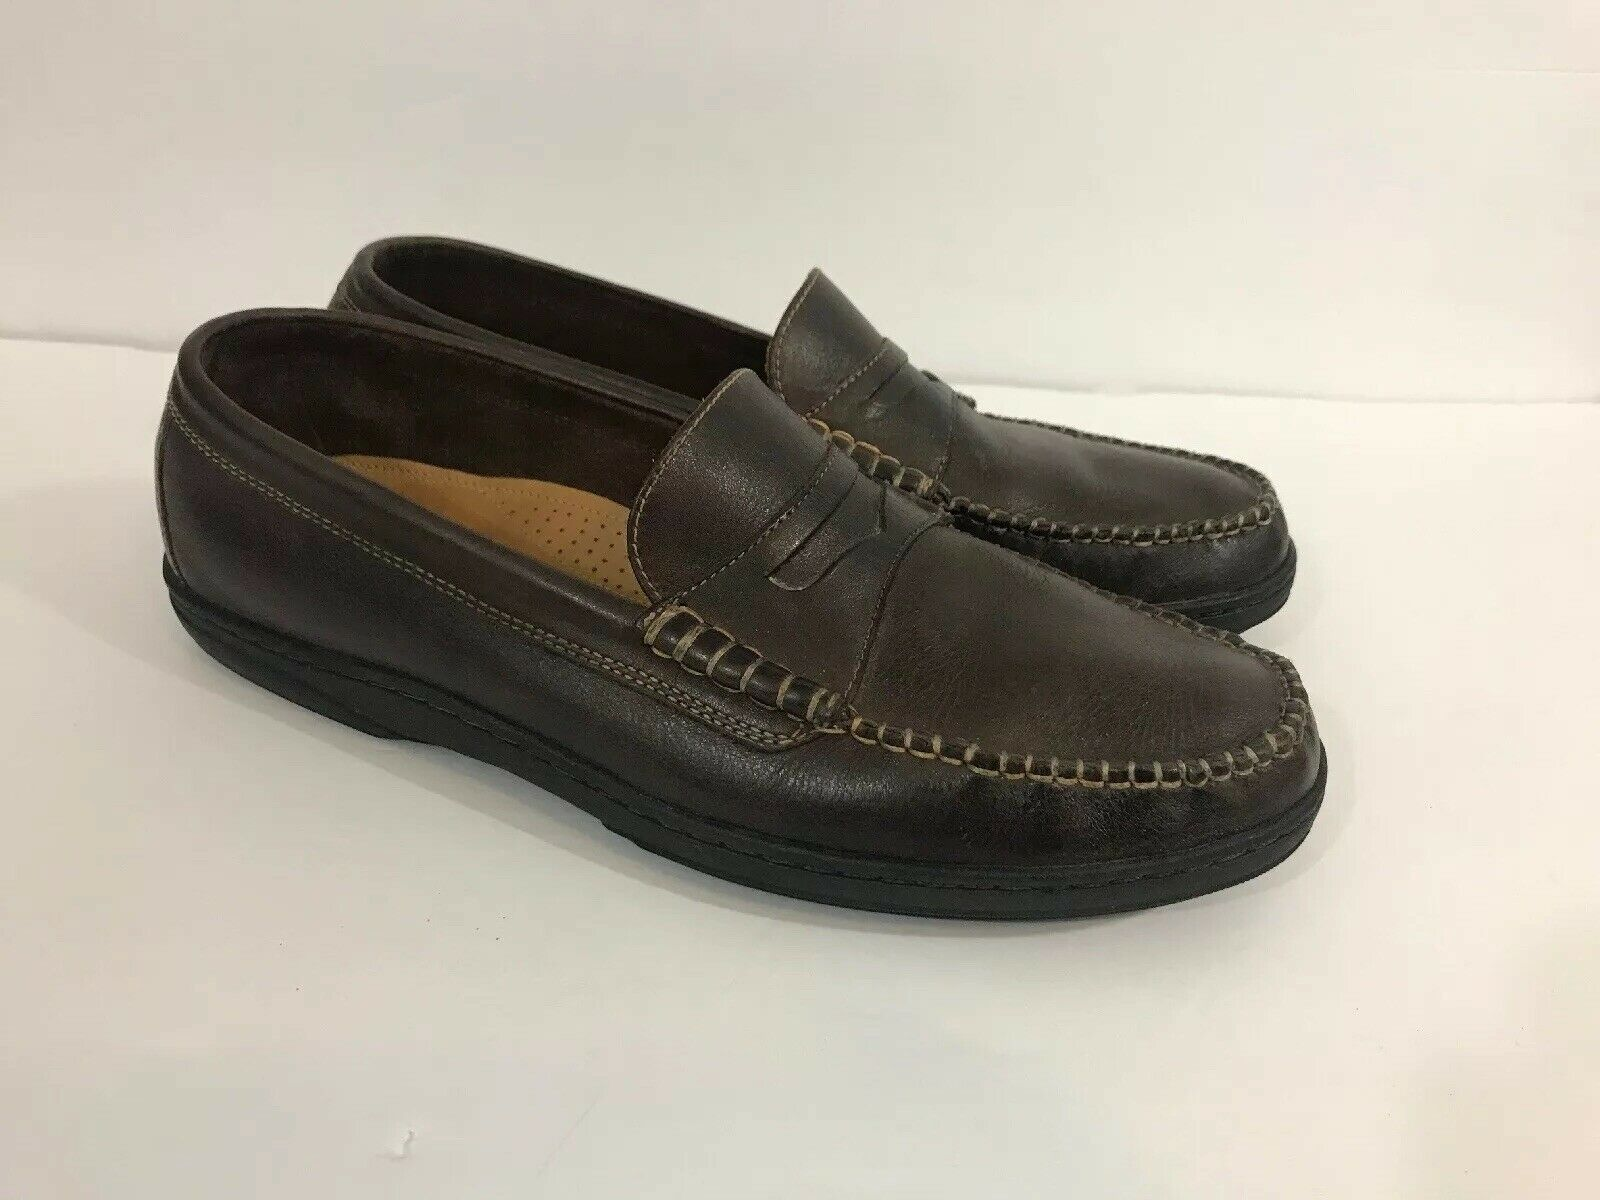 5355de1321b COLE HAAN Mens Size 9 French Cup Penny Loafer C07638 French Roast. Eddie  Bauer brown leather penny loafers Mens casual loafers shoes ...